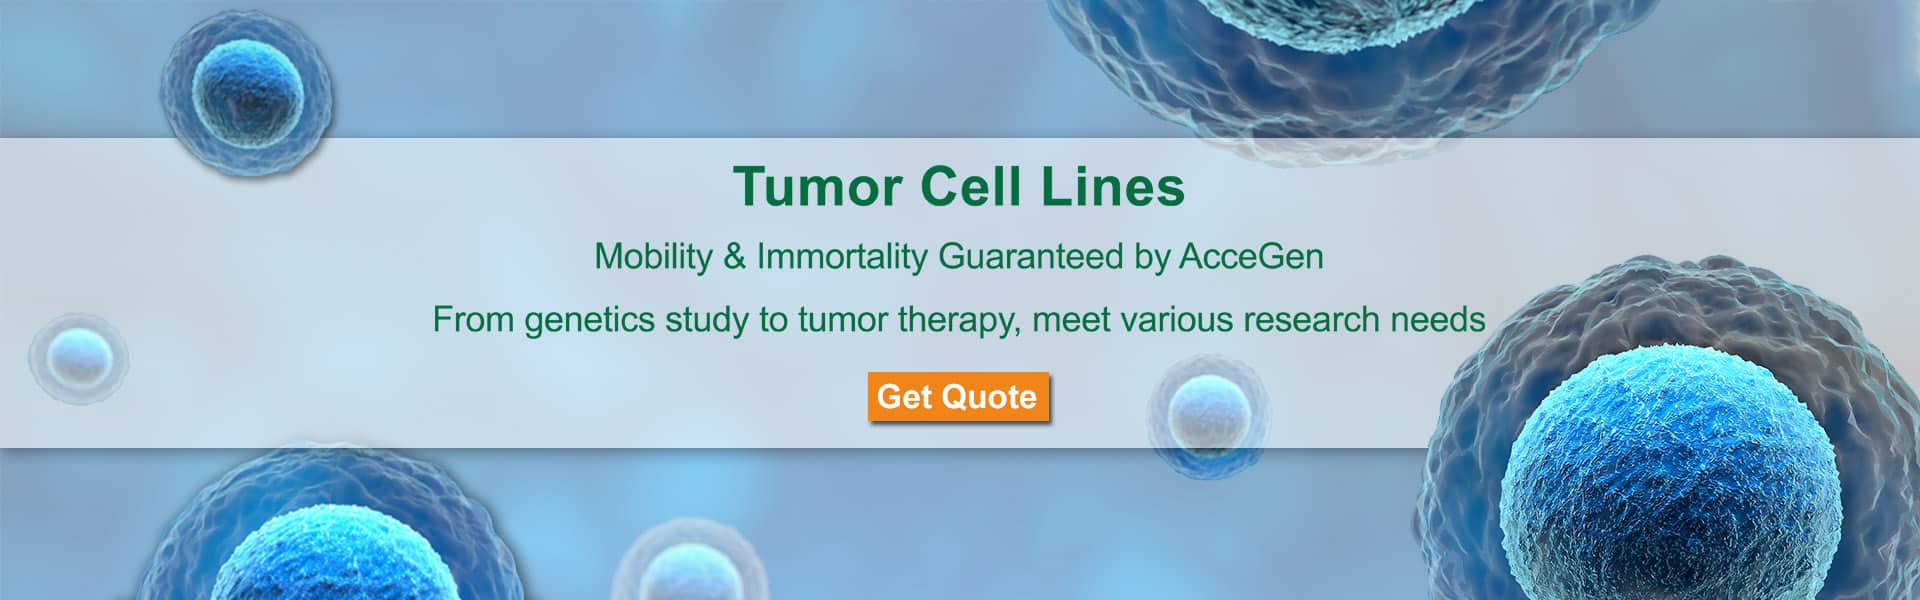 AcceGen Tumor Cell Lines